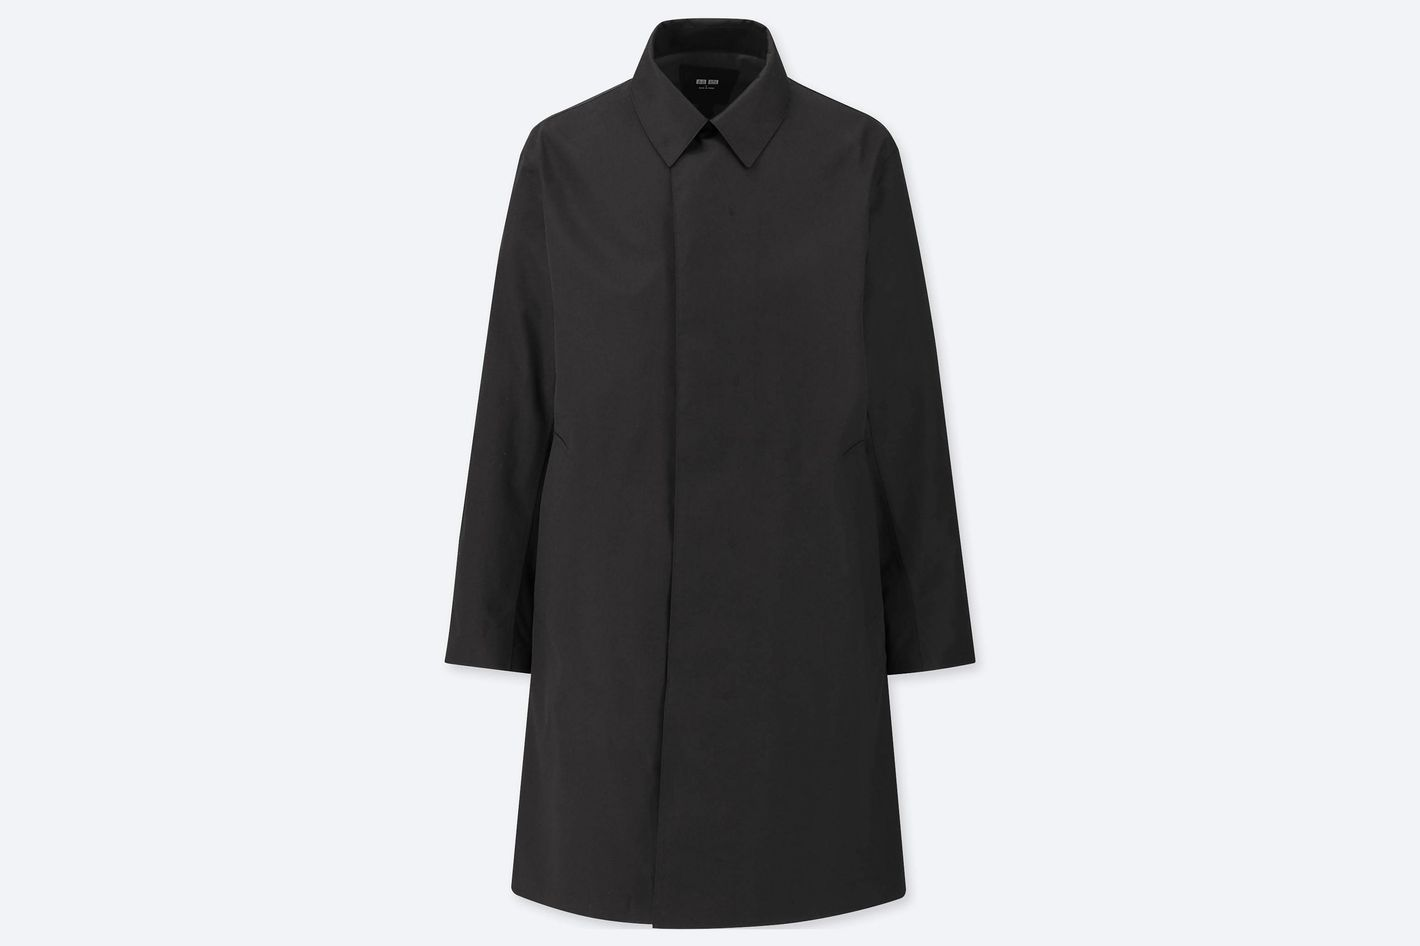 Uniqlo Blocktech Convertible Collar Coat